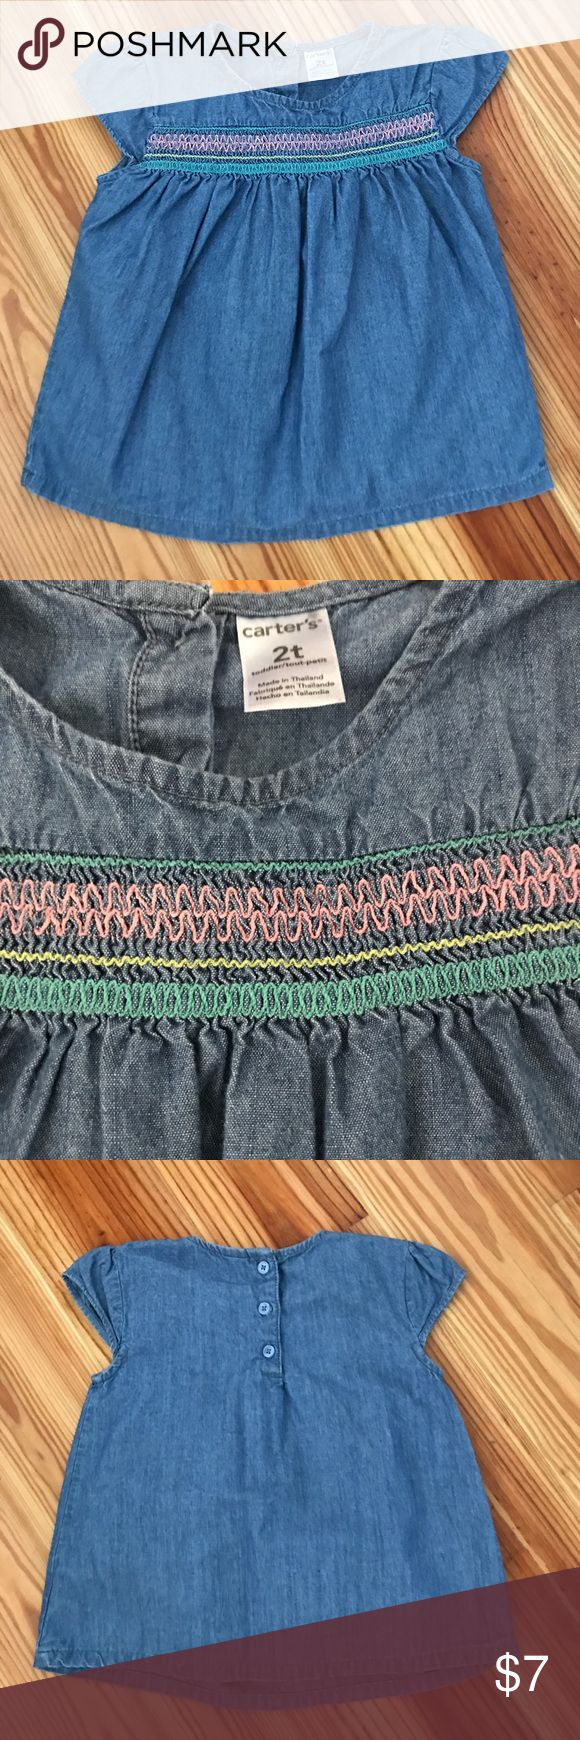 Denim Smocked Top Old Navy denim top with Smocked detail. Size 2T Old Navy Shirts & Tops